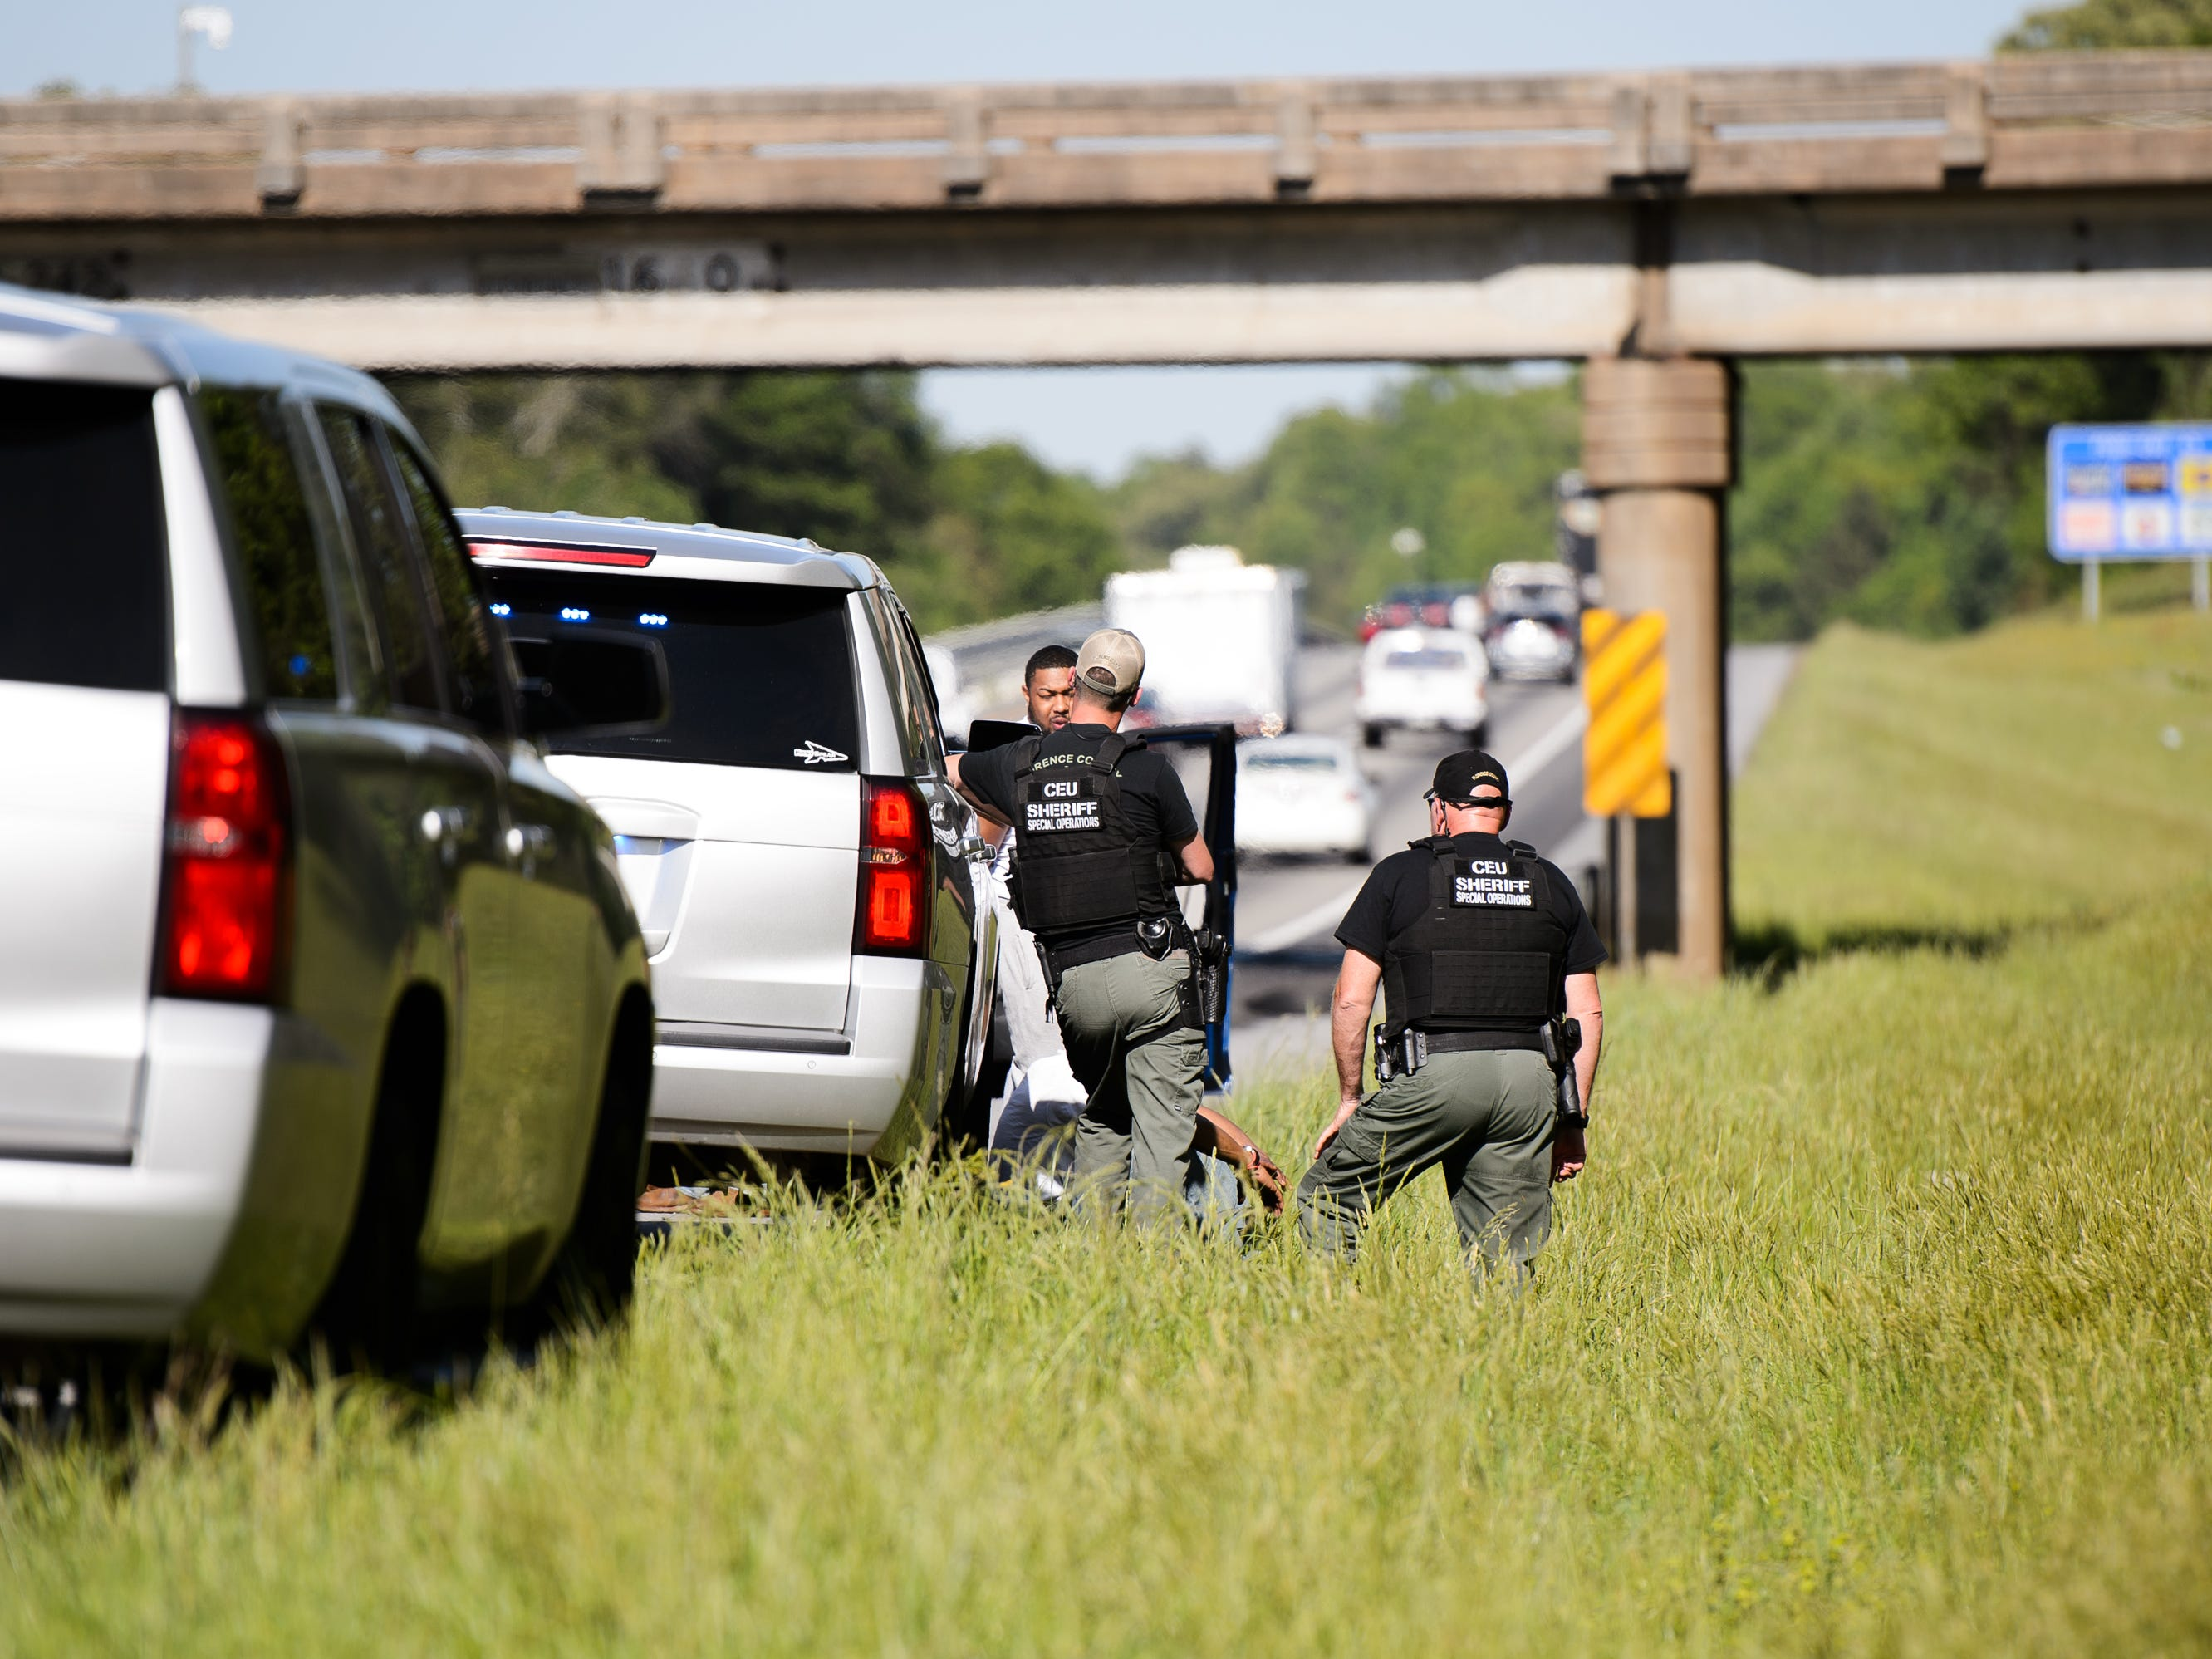 Law enforcement officers search a vehicle on Interstate 85. On average, officers search every fifth stopped car during Rolling Thunder 2018— hundreds of vehicles in all. They bring in a drug-sniffing dog128 times They make 40 arrests, 25 of them for felony offenses.